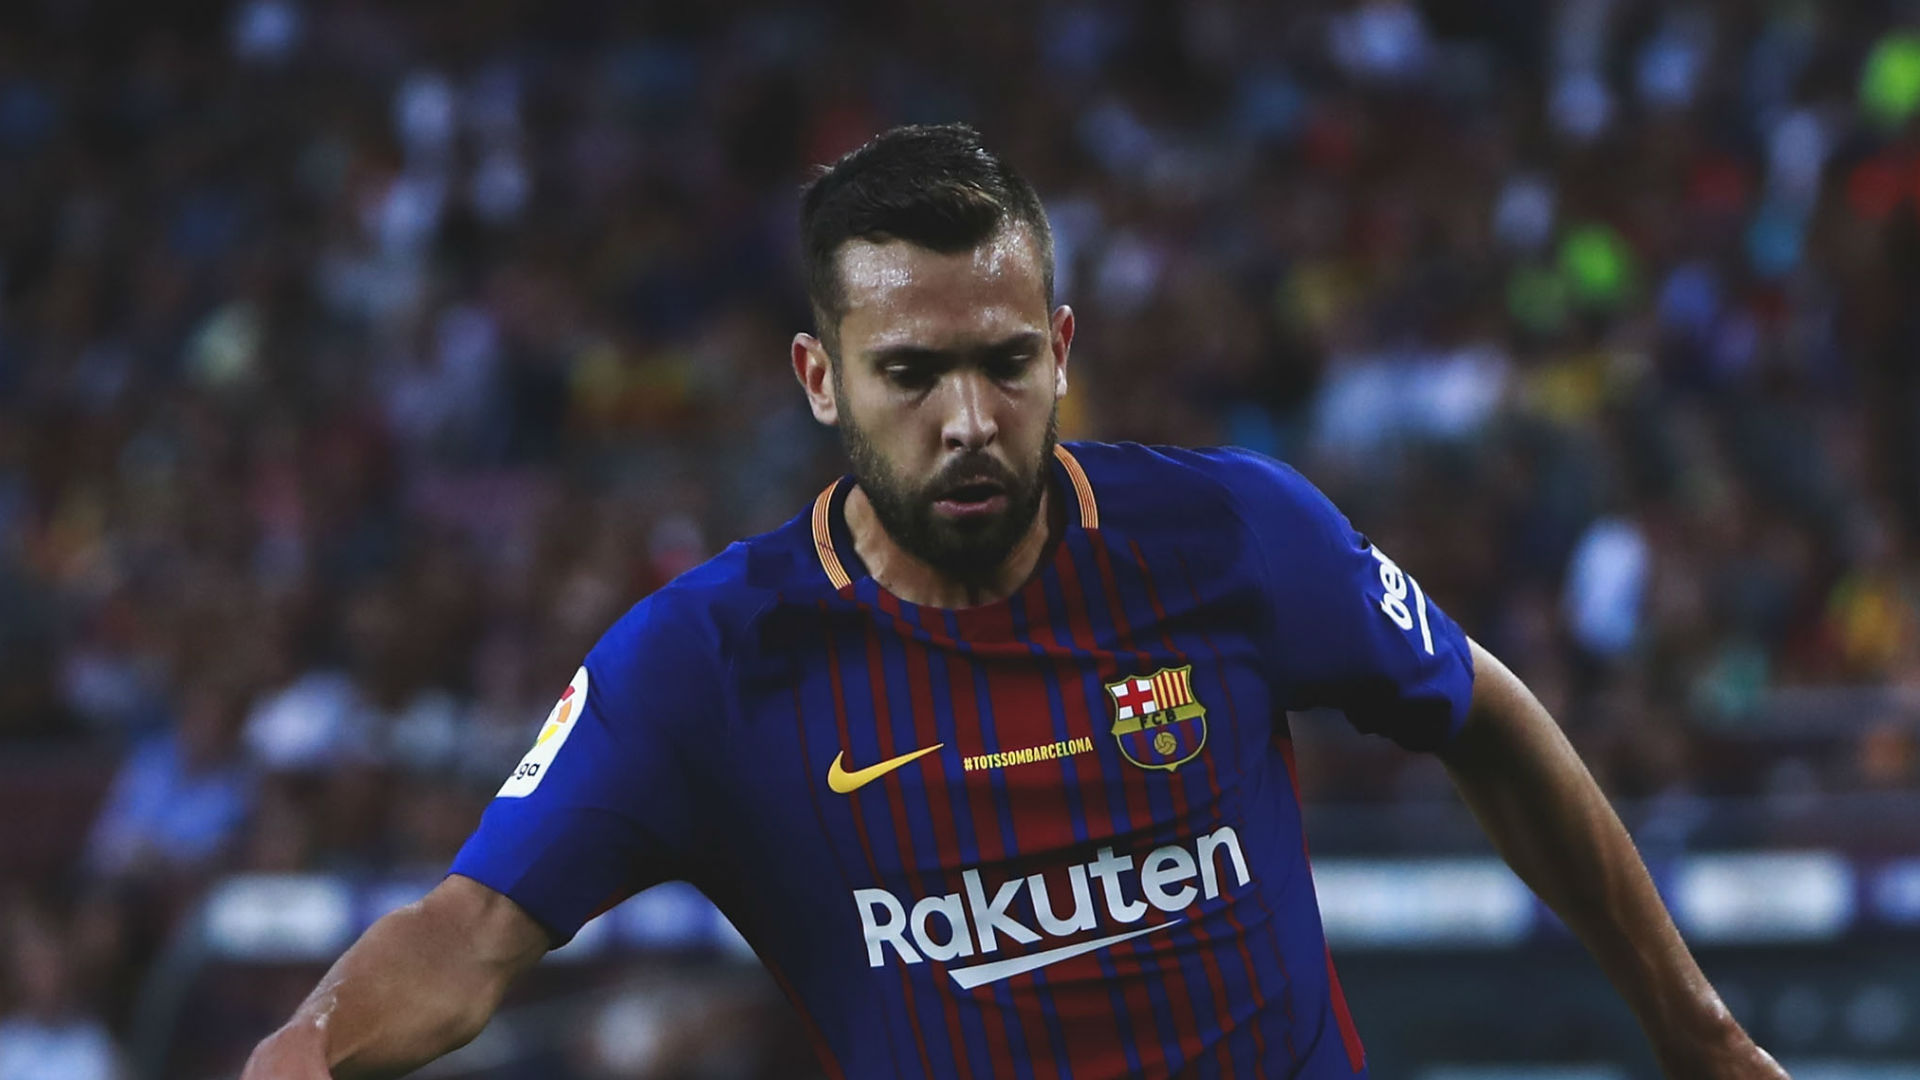 Romantic Wallpapers With Quotes Free Download Jordi Alba Wallpaper